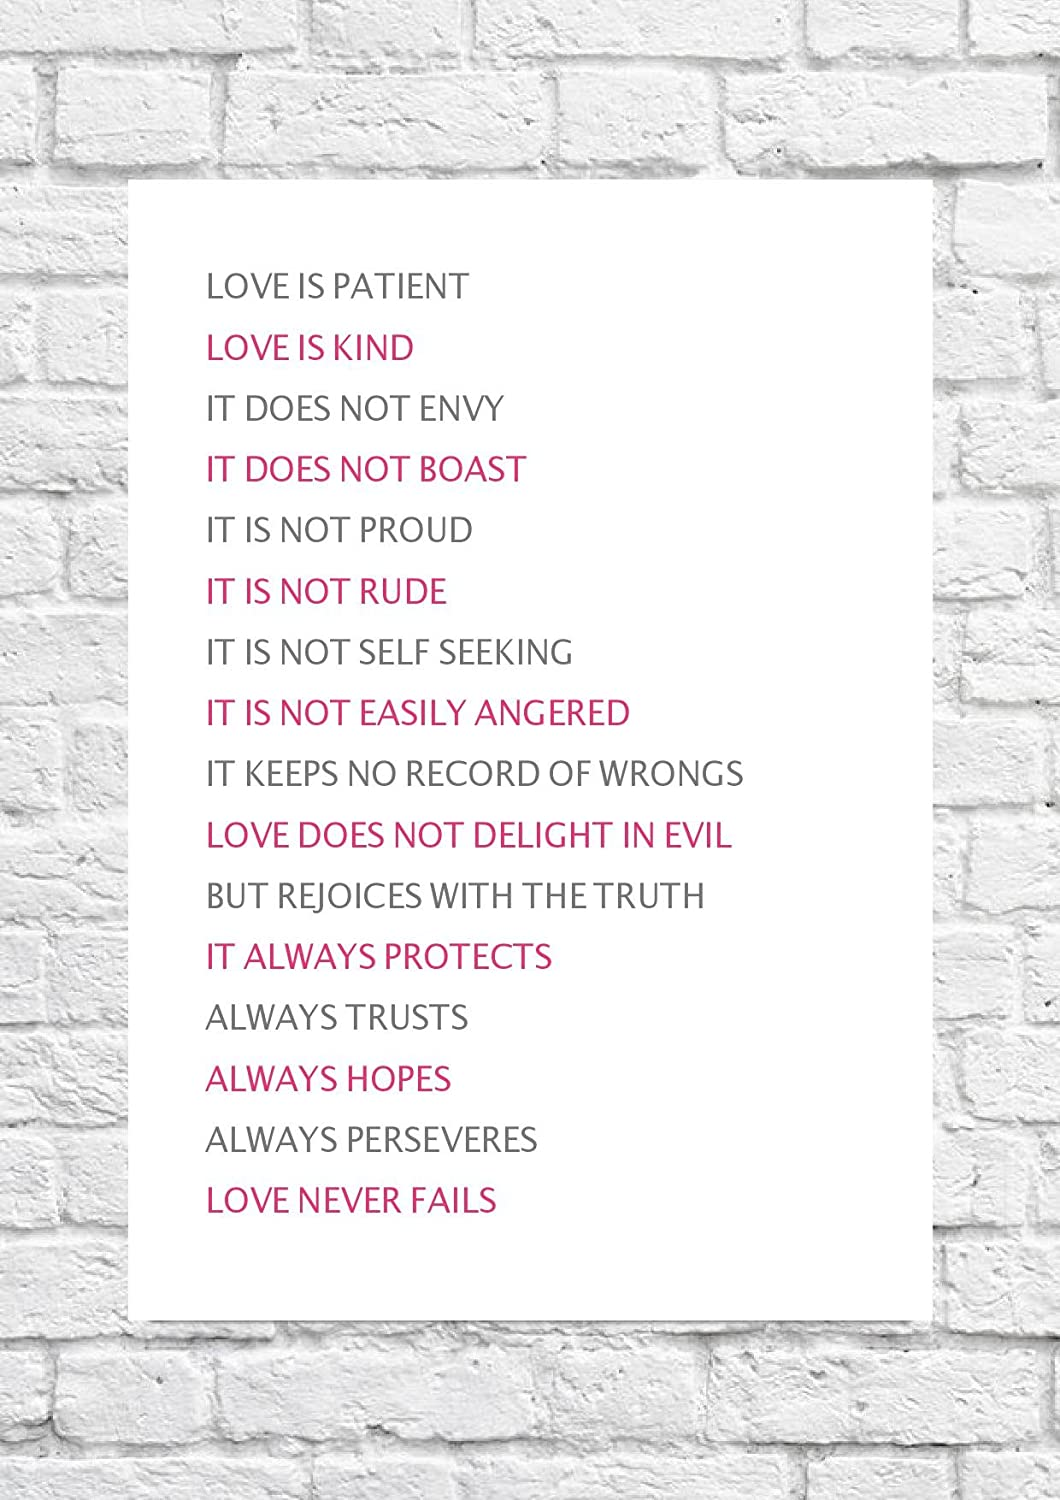 Love Is Patient Love Is Kind   The Bible 1 Corinthians 13:4 Poster/